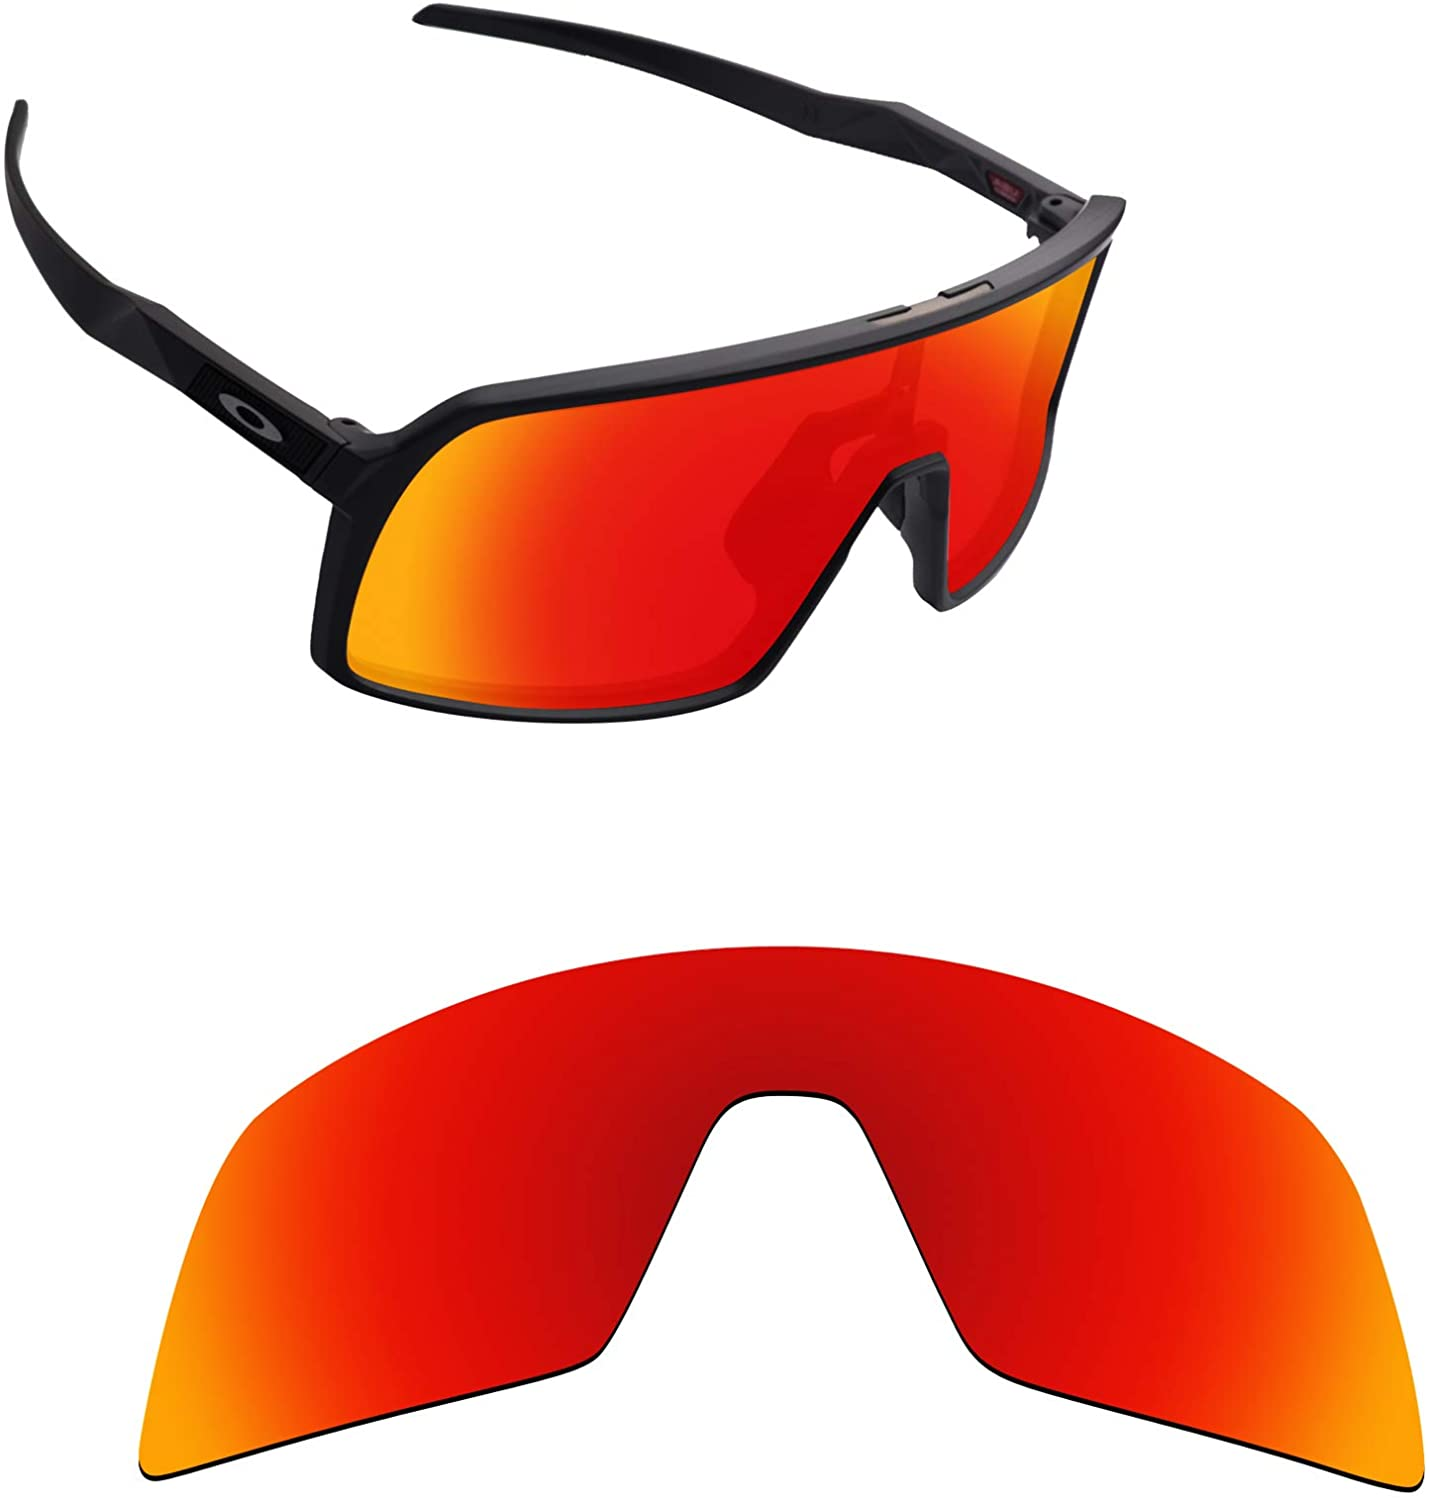 Alphax Polarized Replacement Lenses for Oakley Sutro OO9406 - Multiple Options